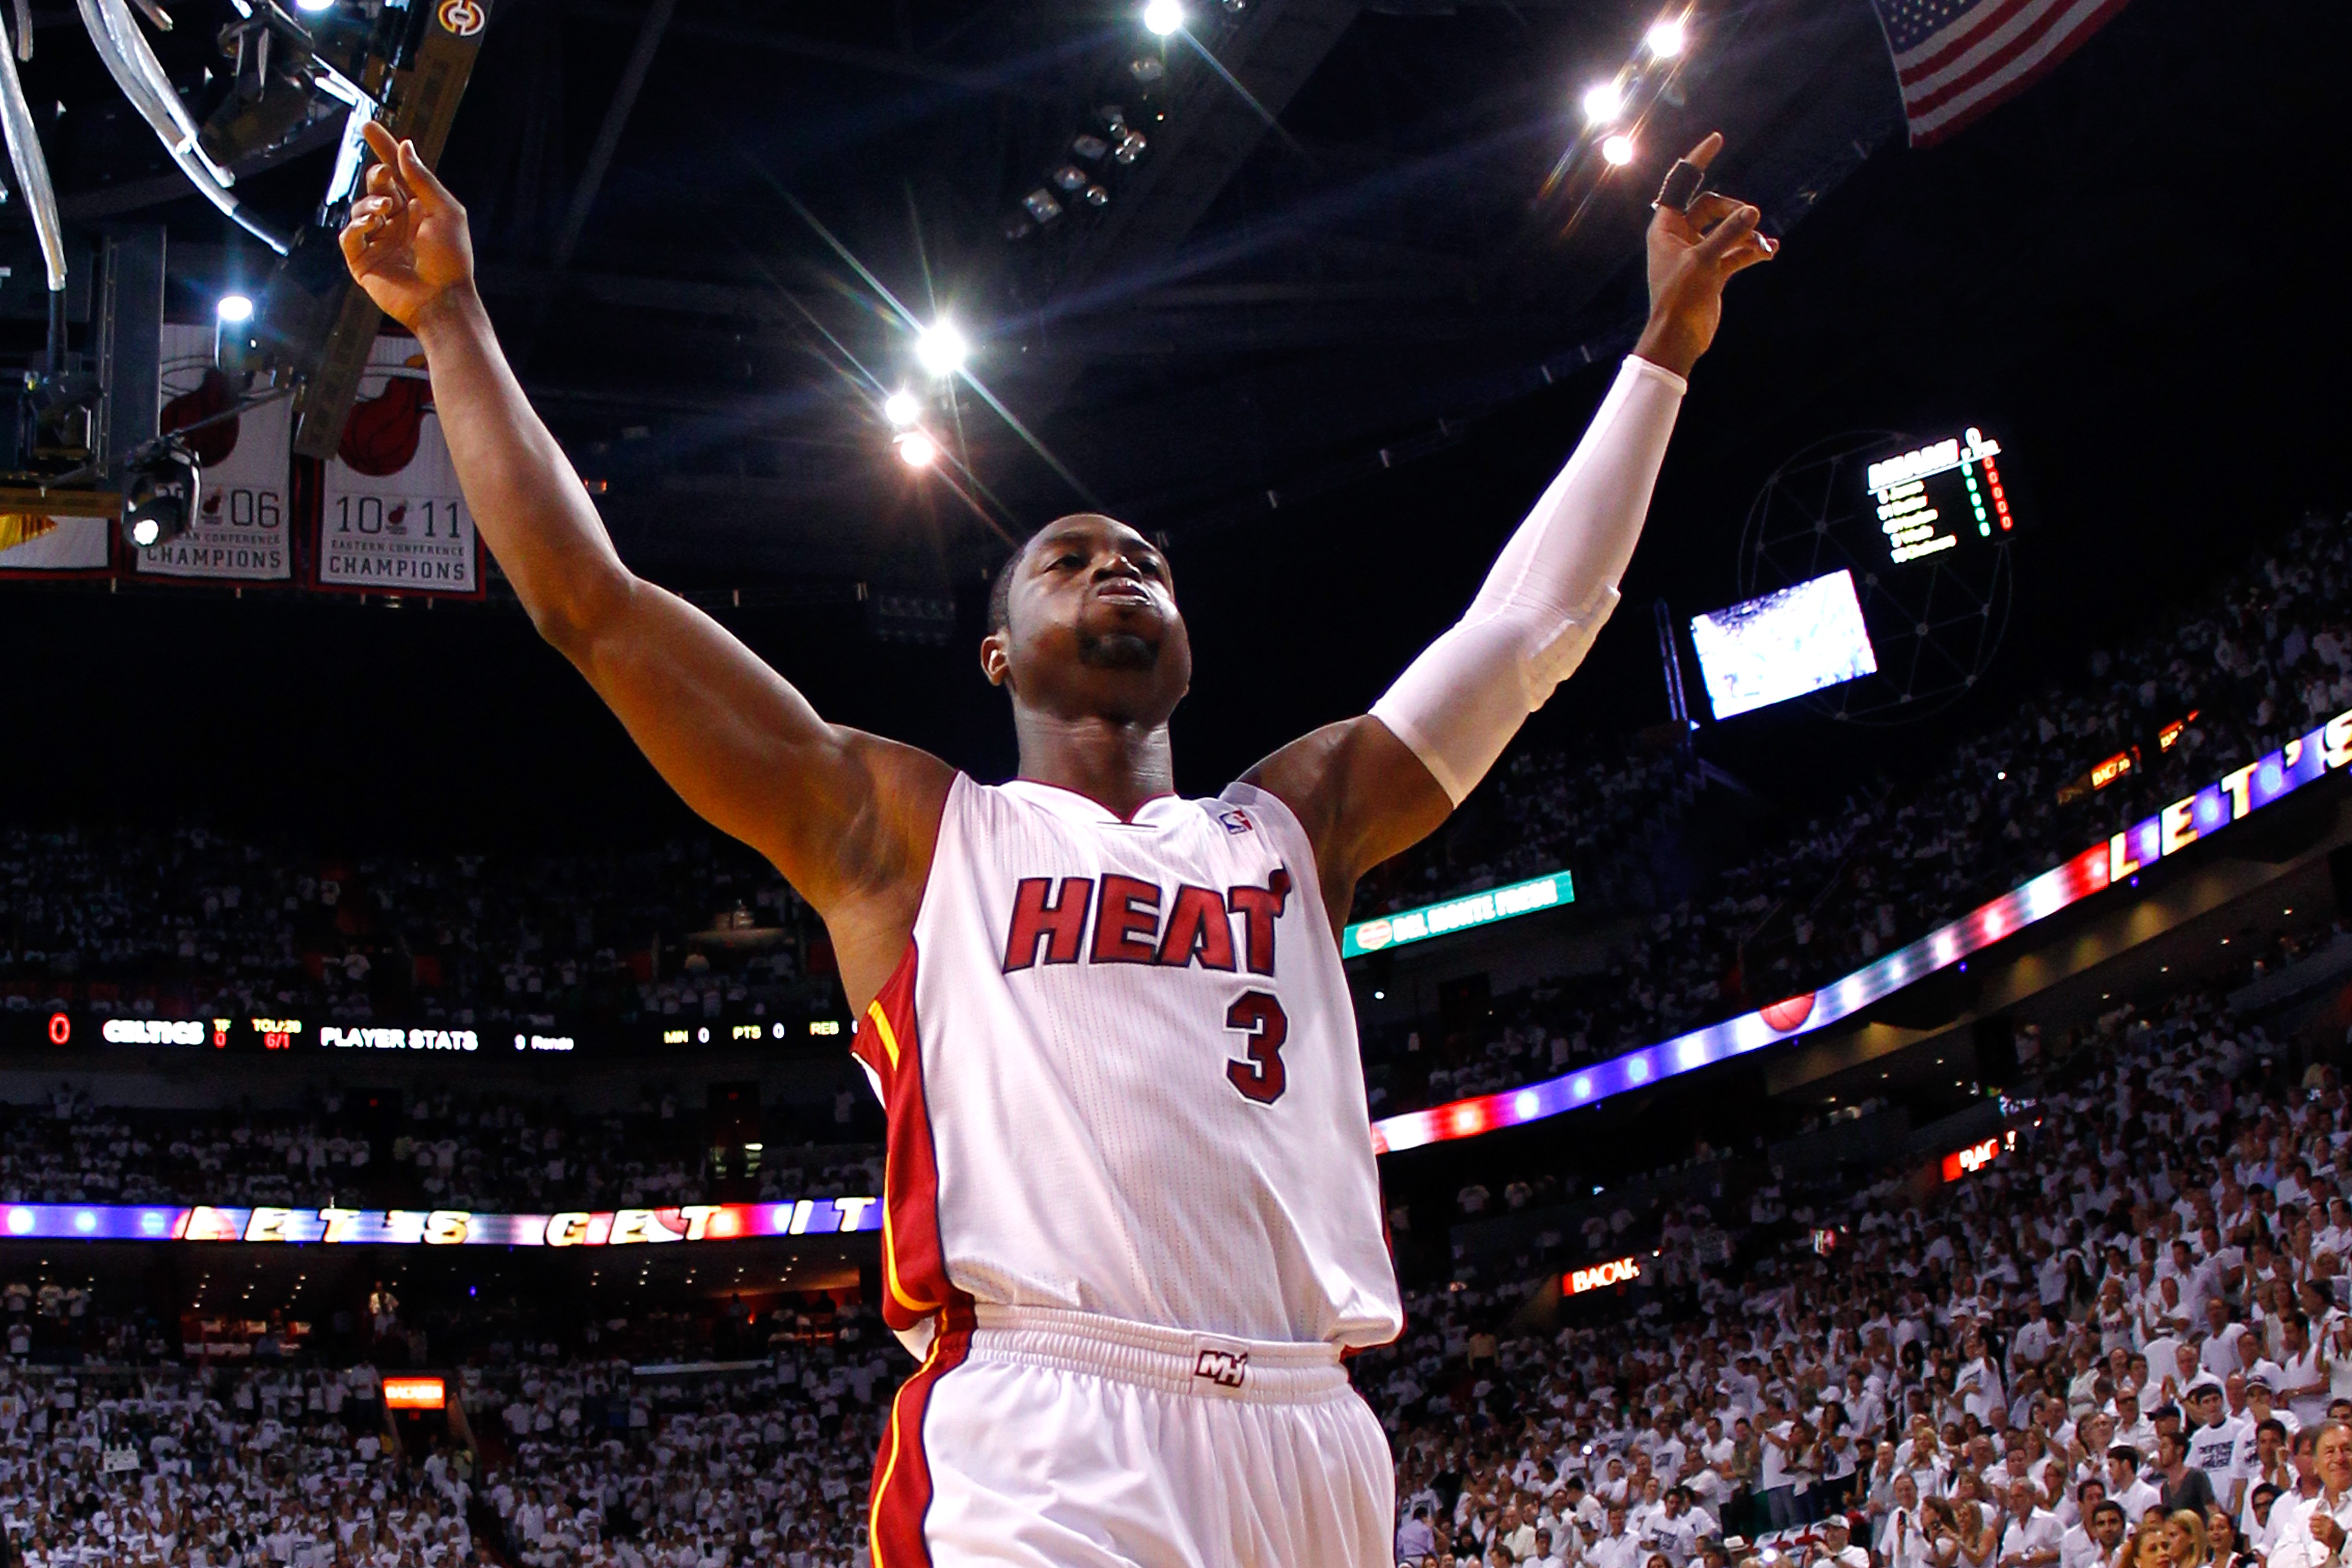 MIAMI, FL - JUNE 09:  Dwyane Wade #3 of the Miami Heat reacts before taking on the Boston Celtics in Game Seven of the Eastern Conference Finals in the 2012 NBA Playoffs on June 9, 2012 at American Airlines Arena in Miami, Florida. (Photo by Mike Ehrmann/